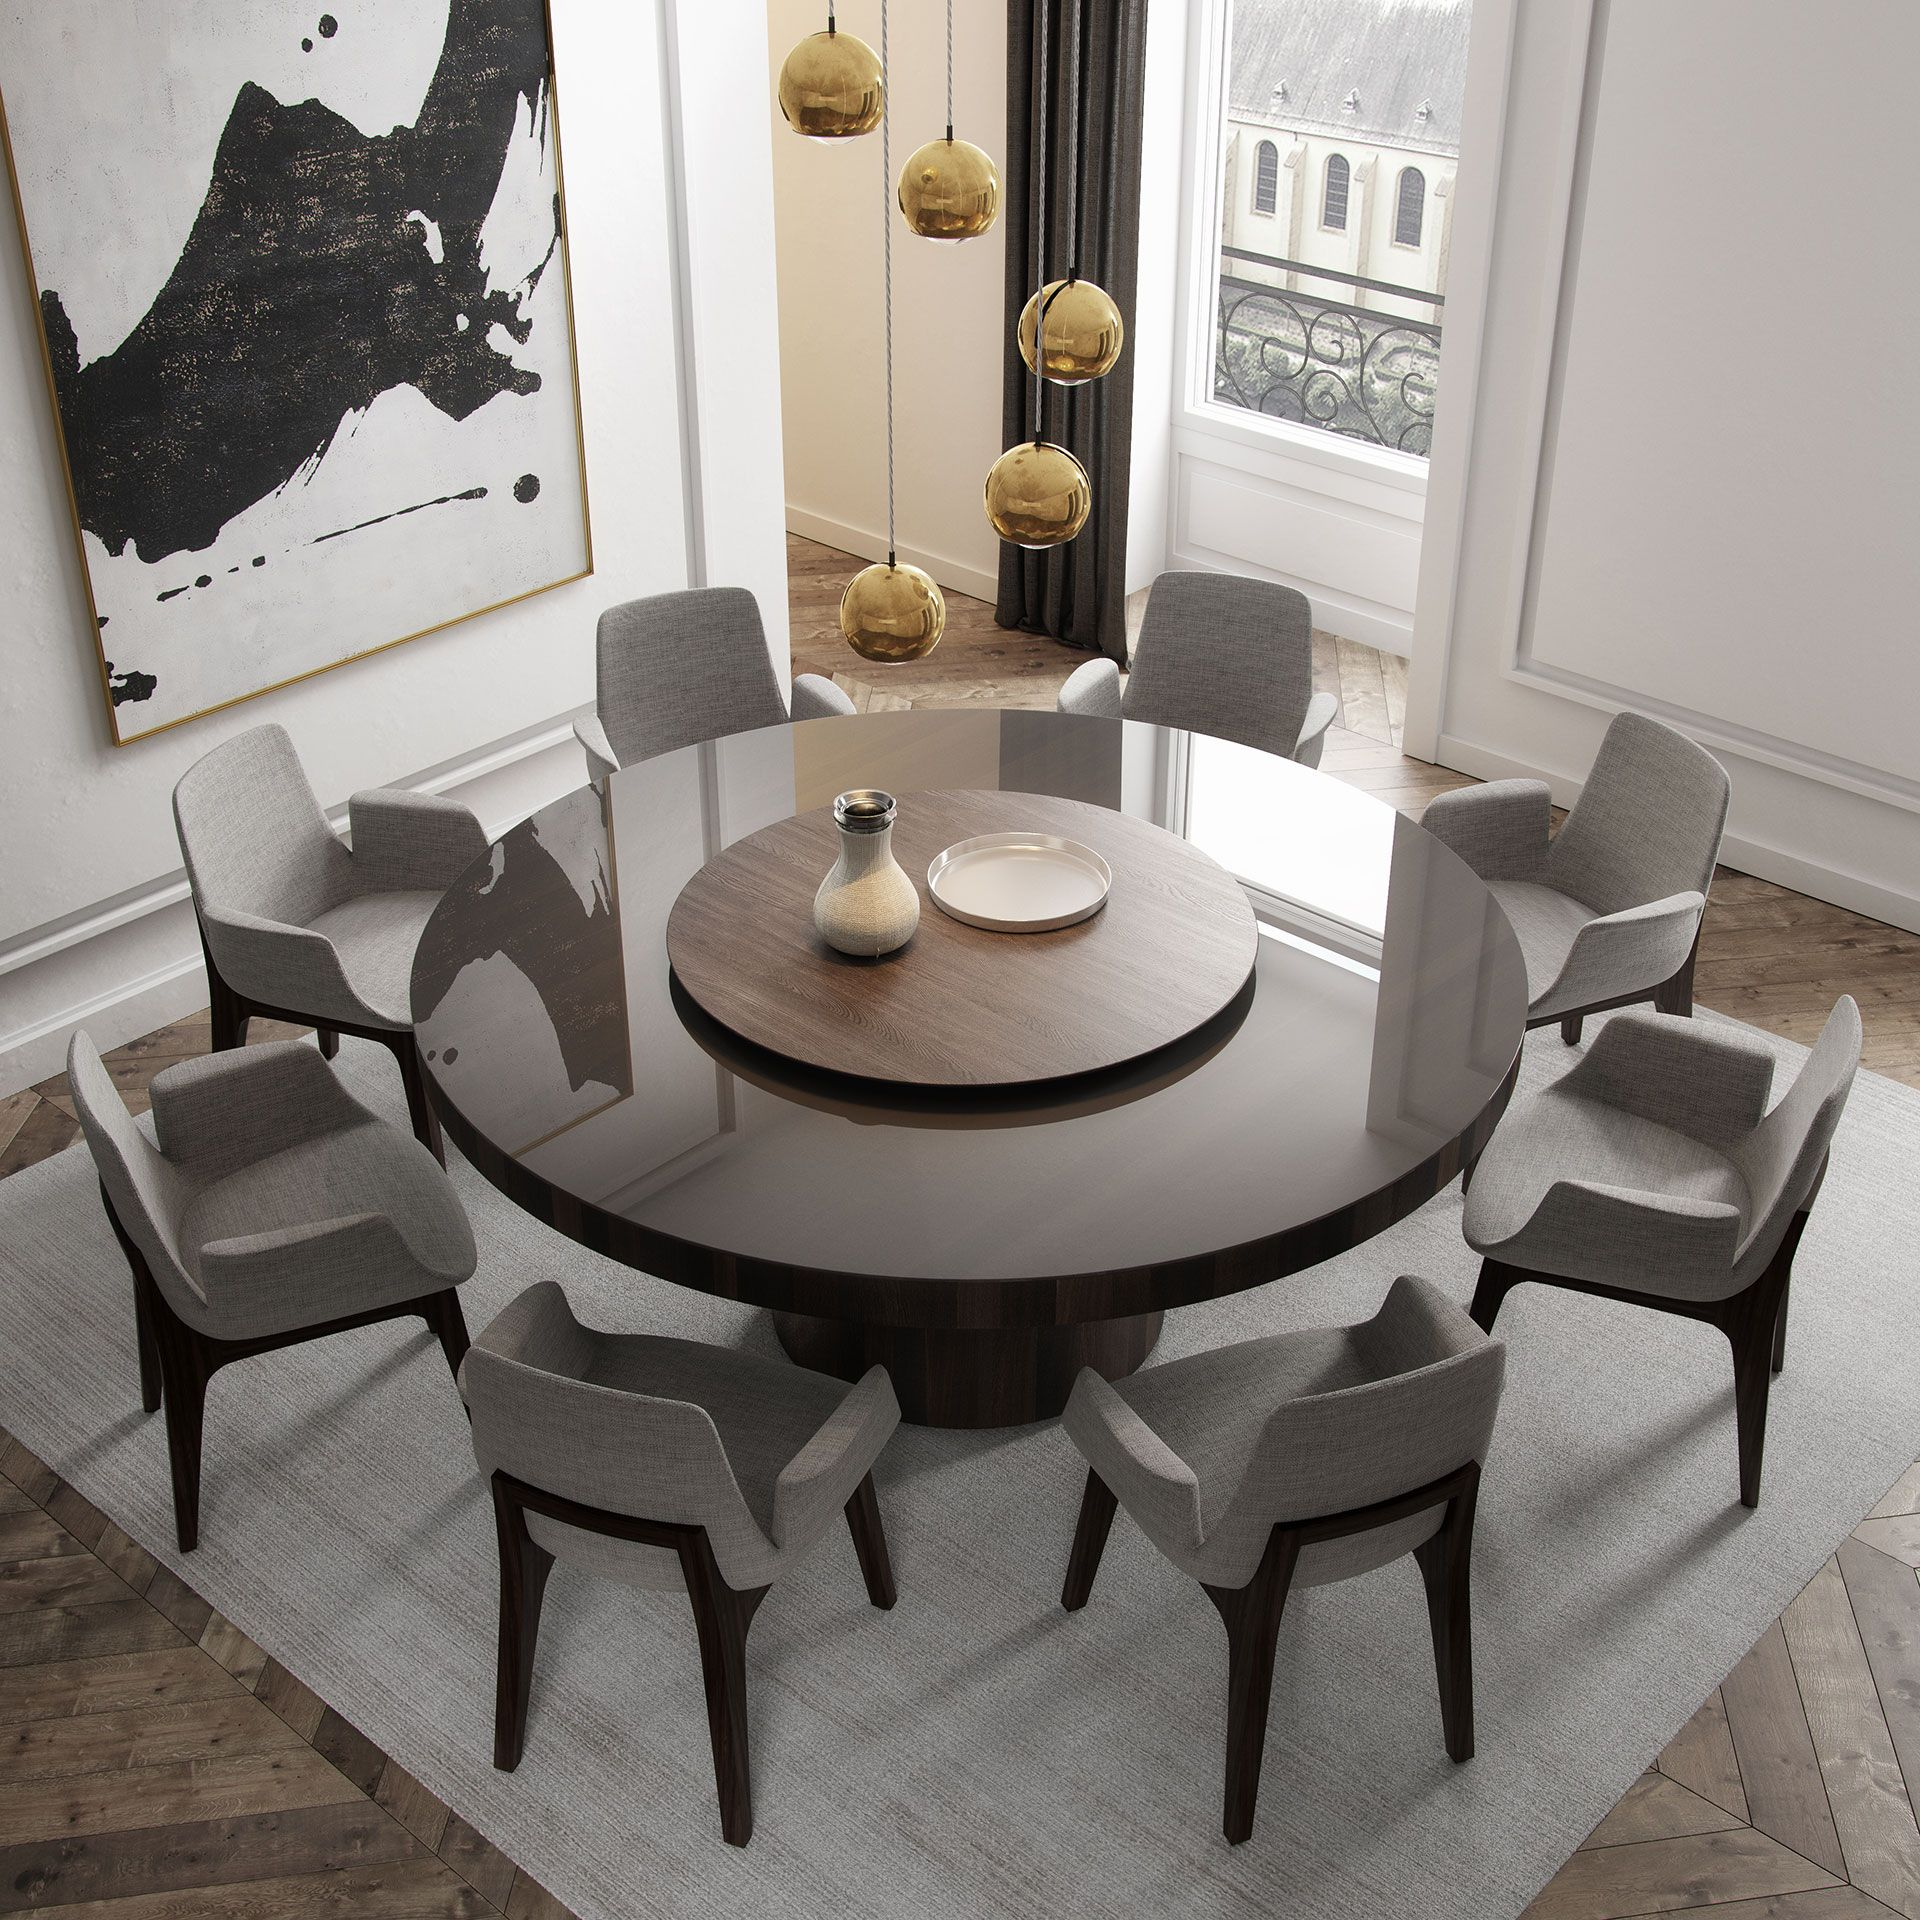 Pin on Dining table design